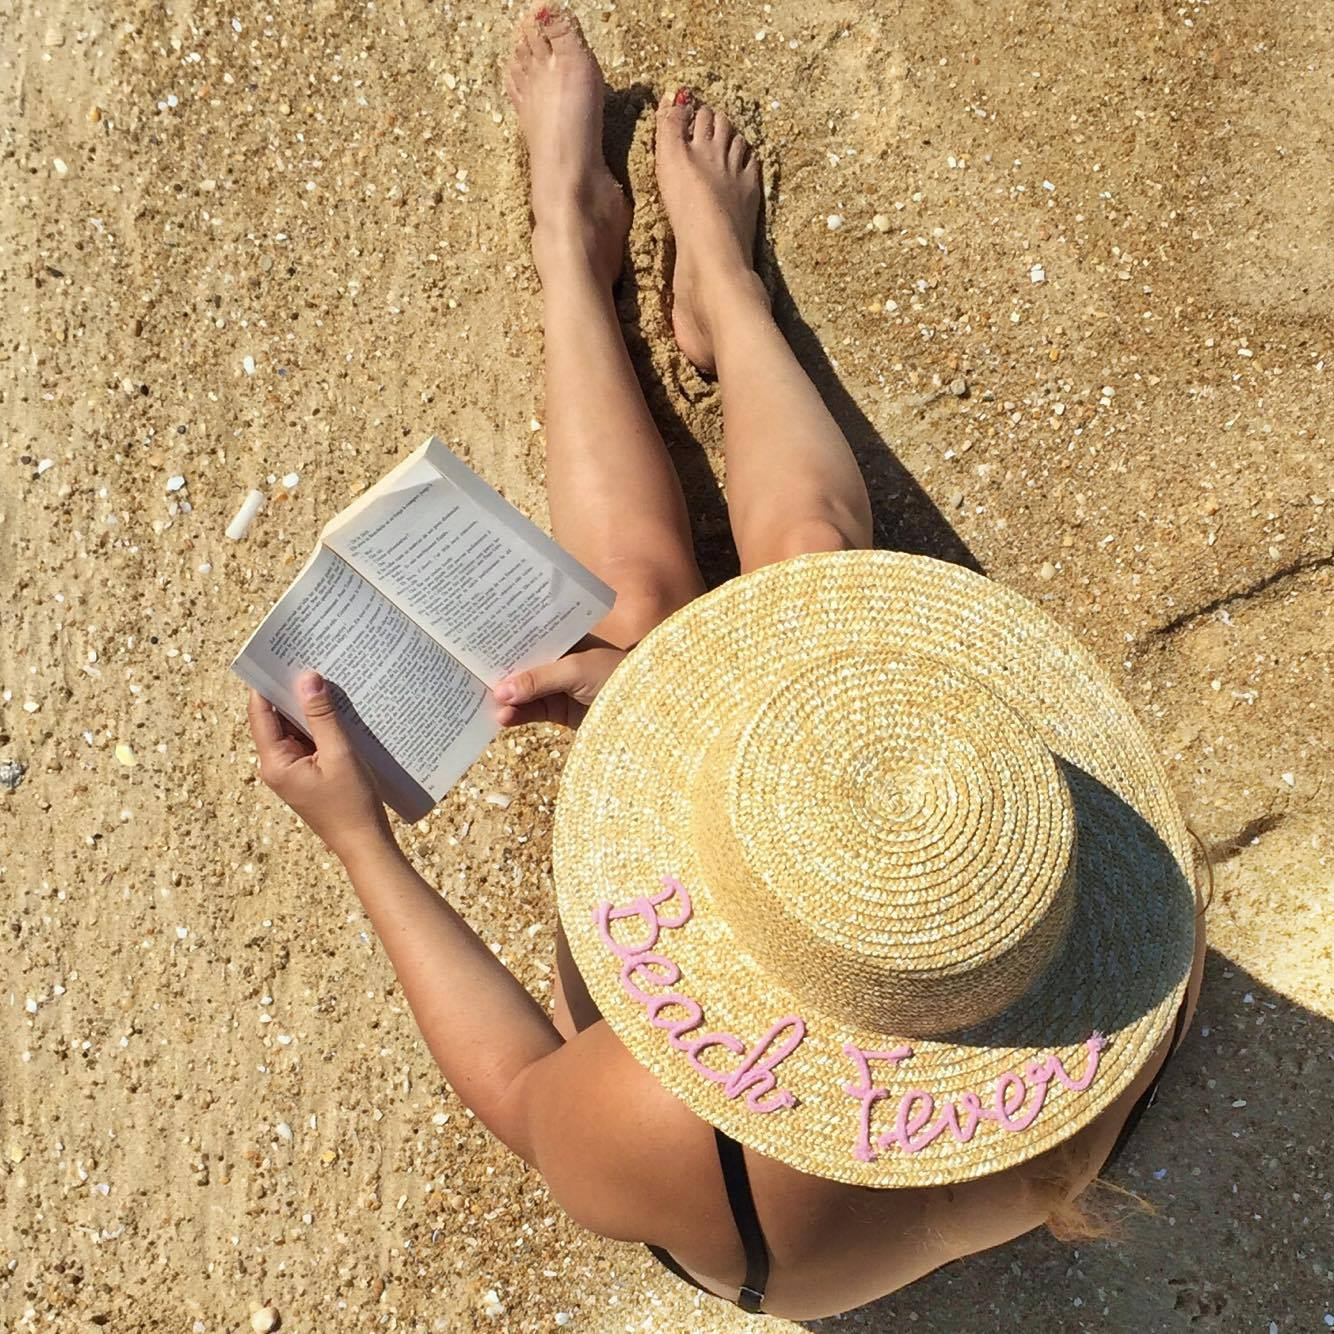 chapeau paille beach fever Pimkie - blog Camille In Bordeaux